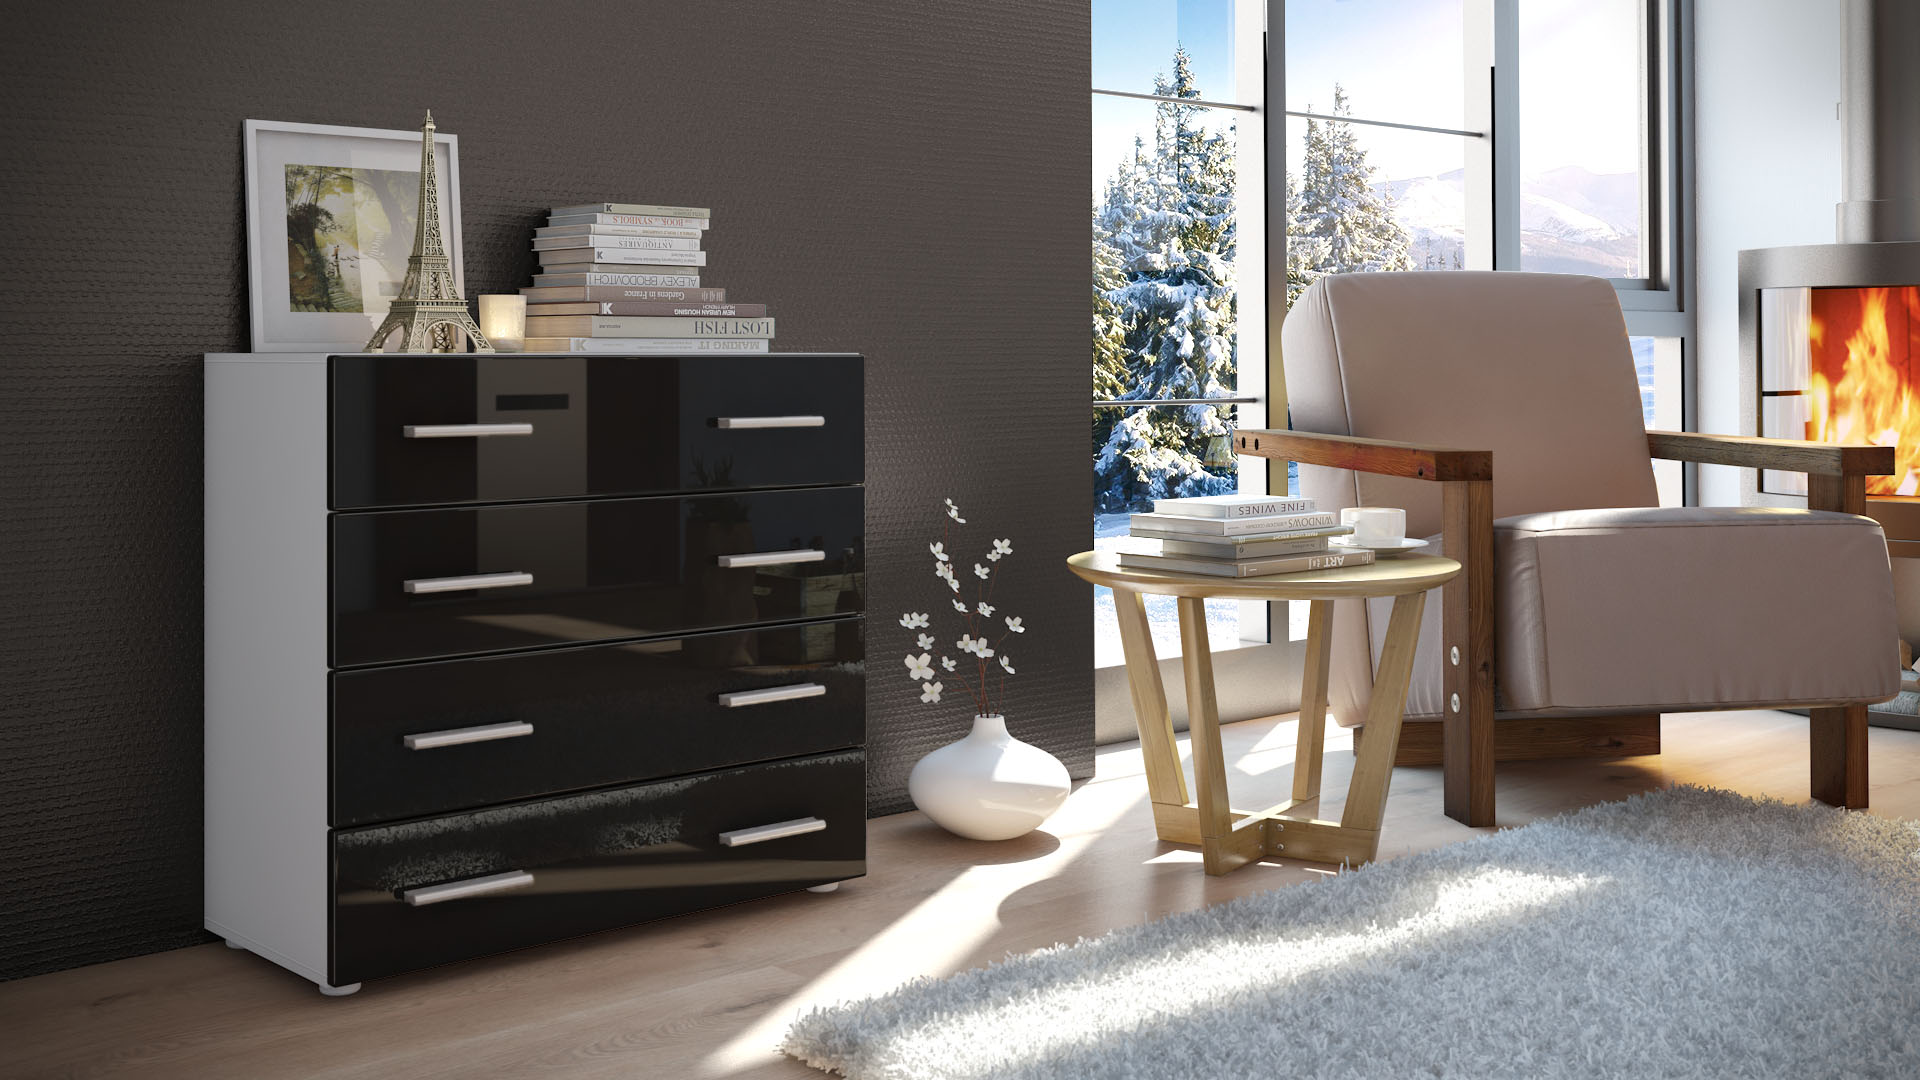 kommode schrank anrichte sideboard pavos in wei hochglanz naturt ne ebay. Black Bedroom Furniture Sets. Home Design Ideas